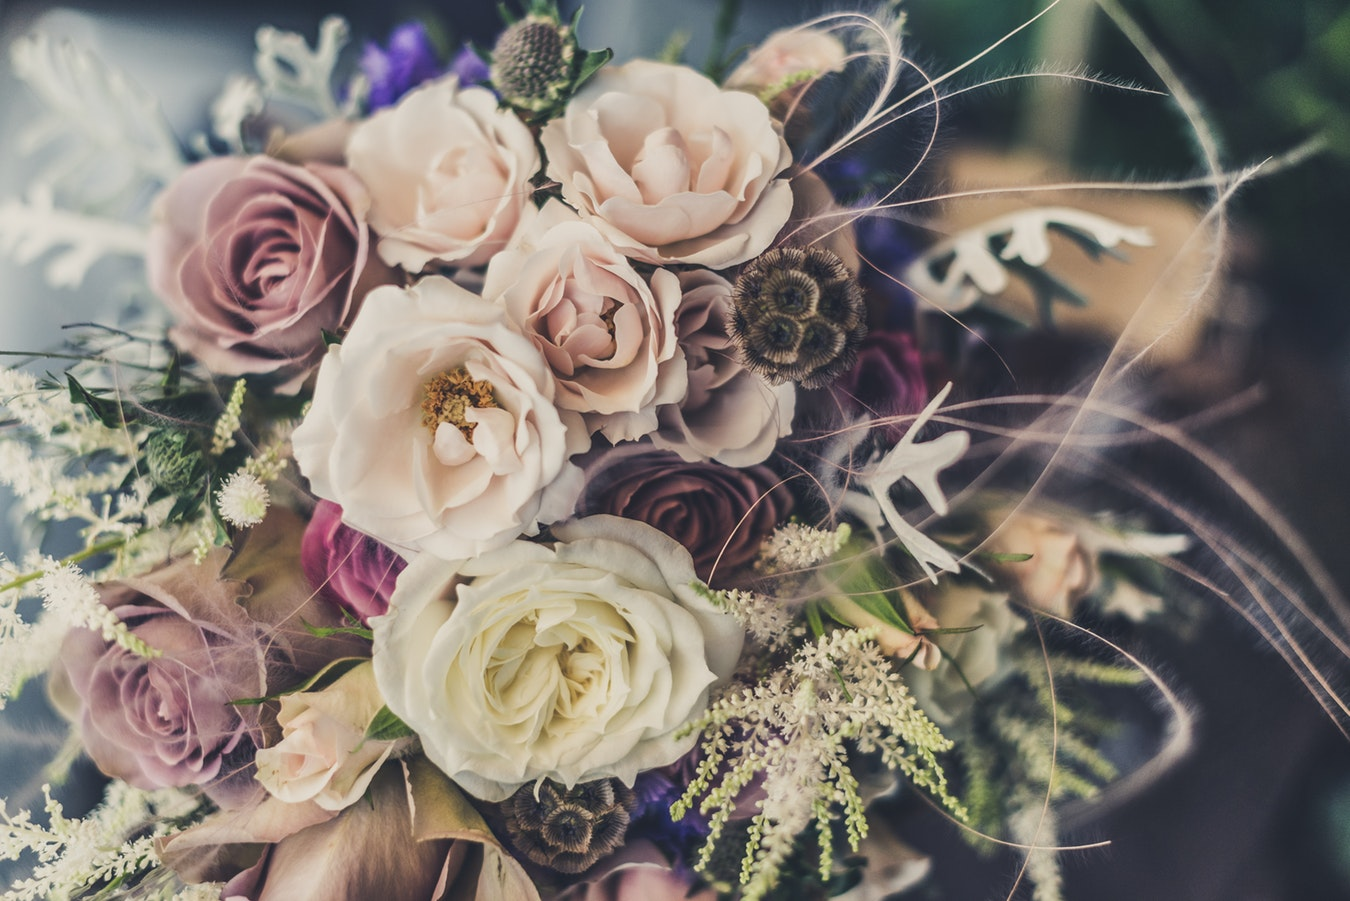 Preserved wedding bouquets can last a lifetime